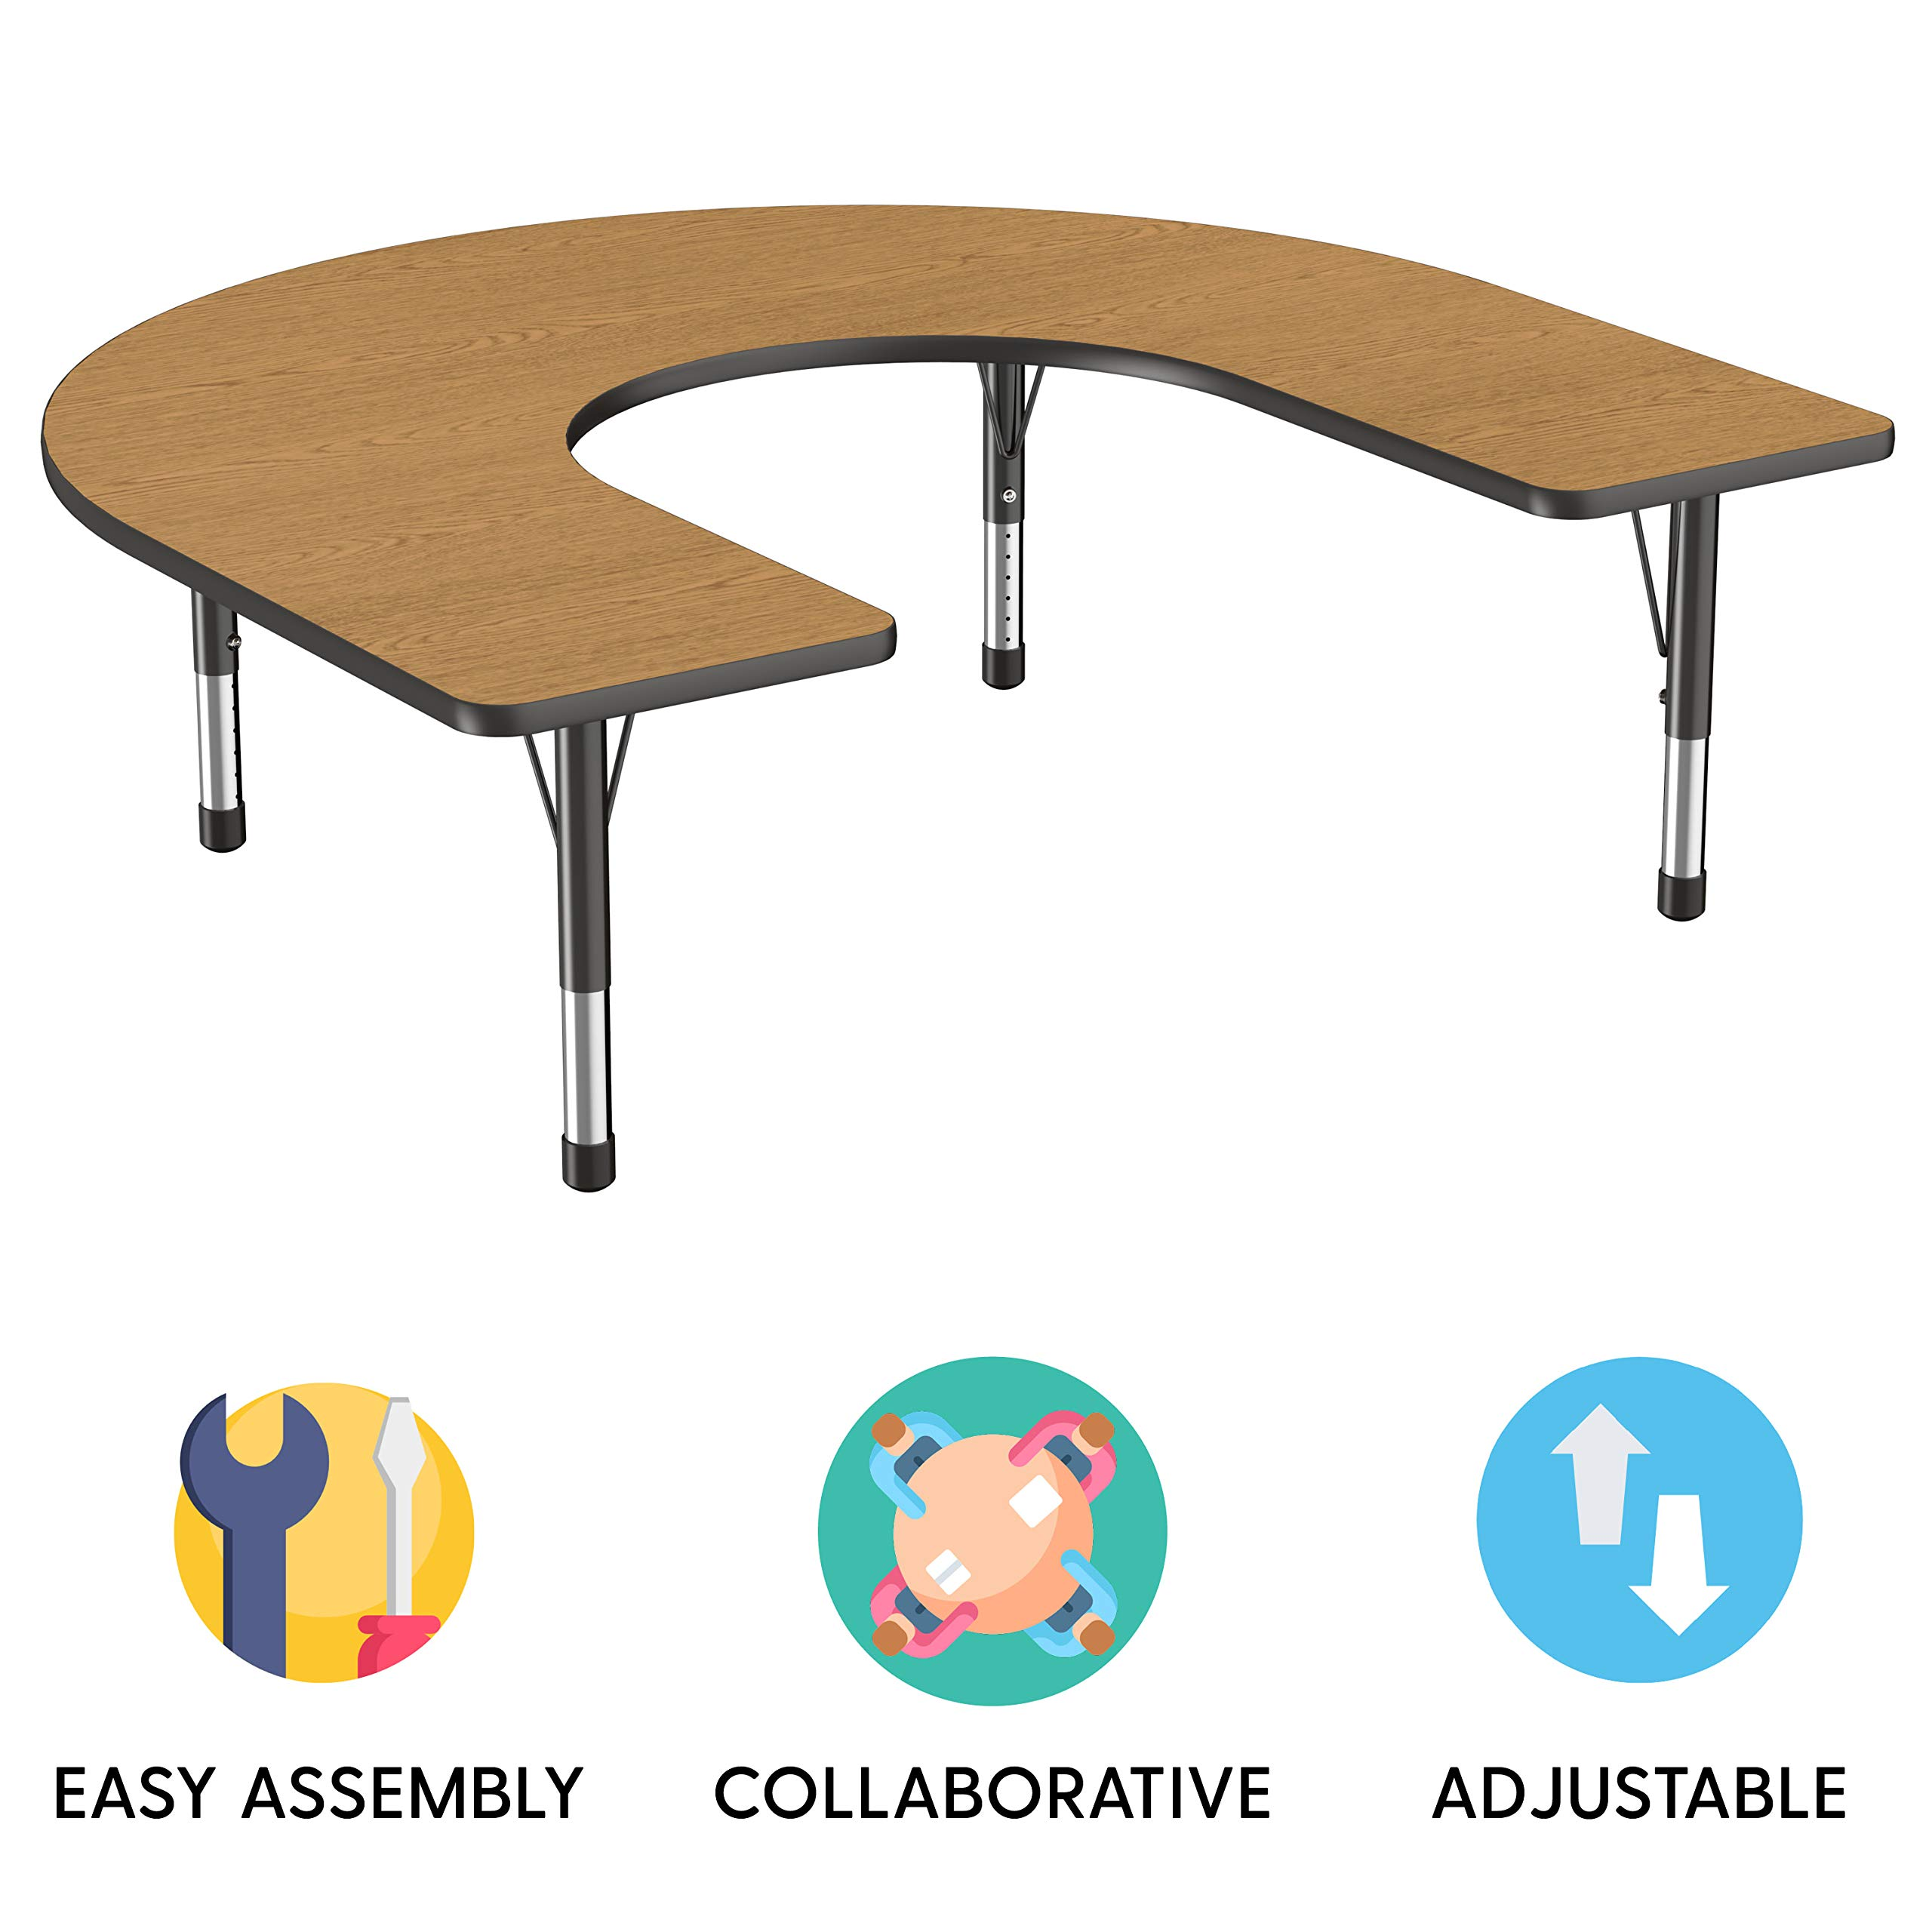 FDP Horseshoe Activity School and Classroom Kids Table (60 x 66 inch), Toddler Legs for Collaborative Seating Environments, Adjustable Height 15-24 inches - Oak Top and Black Edge